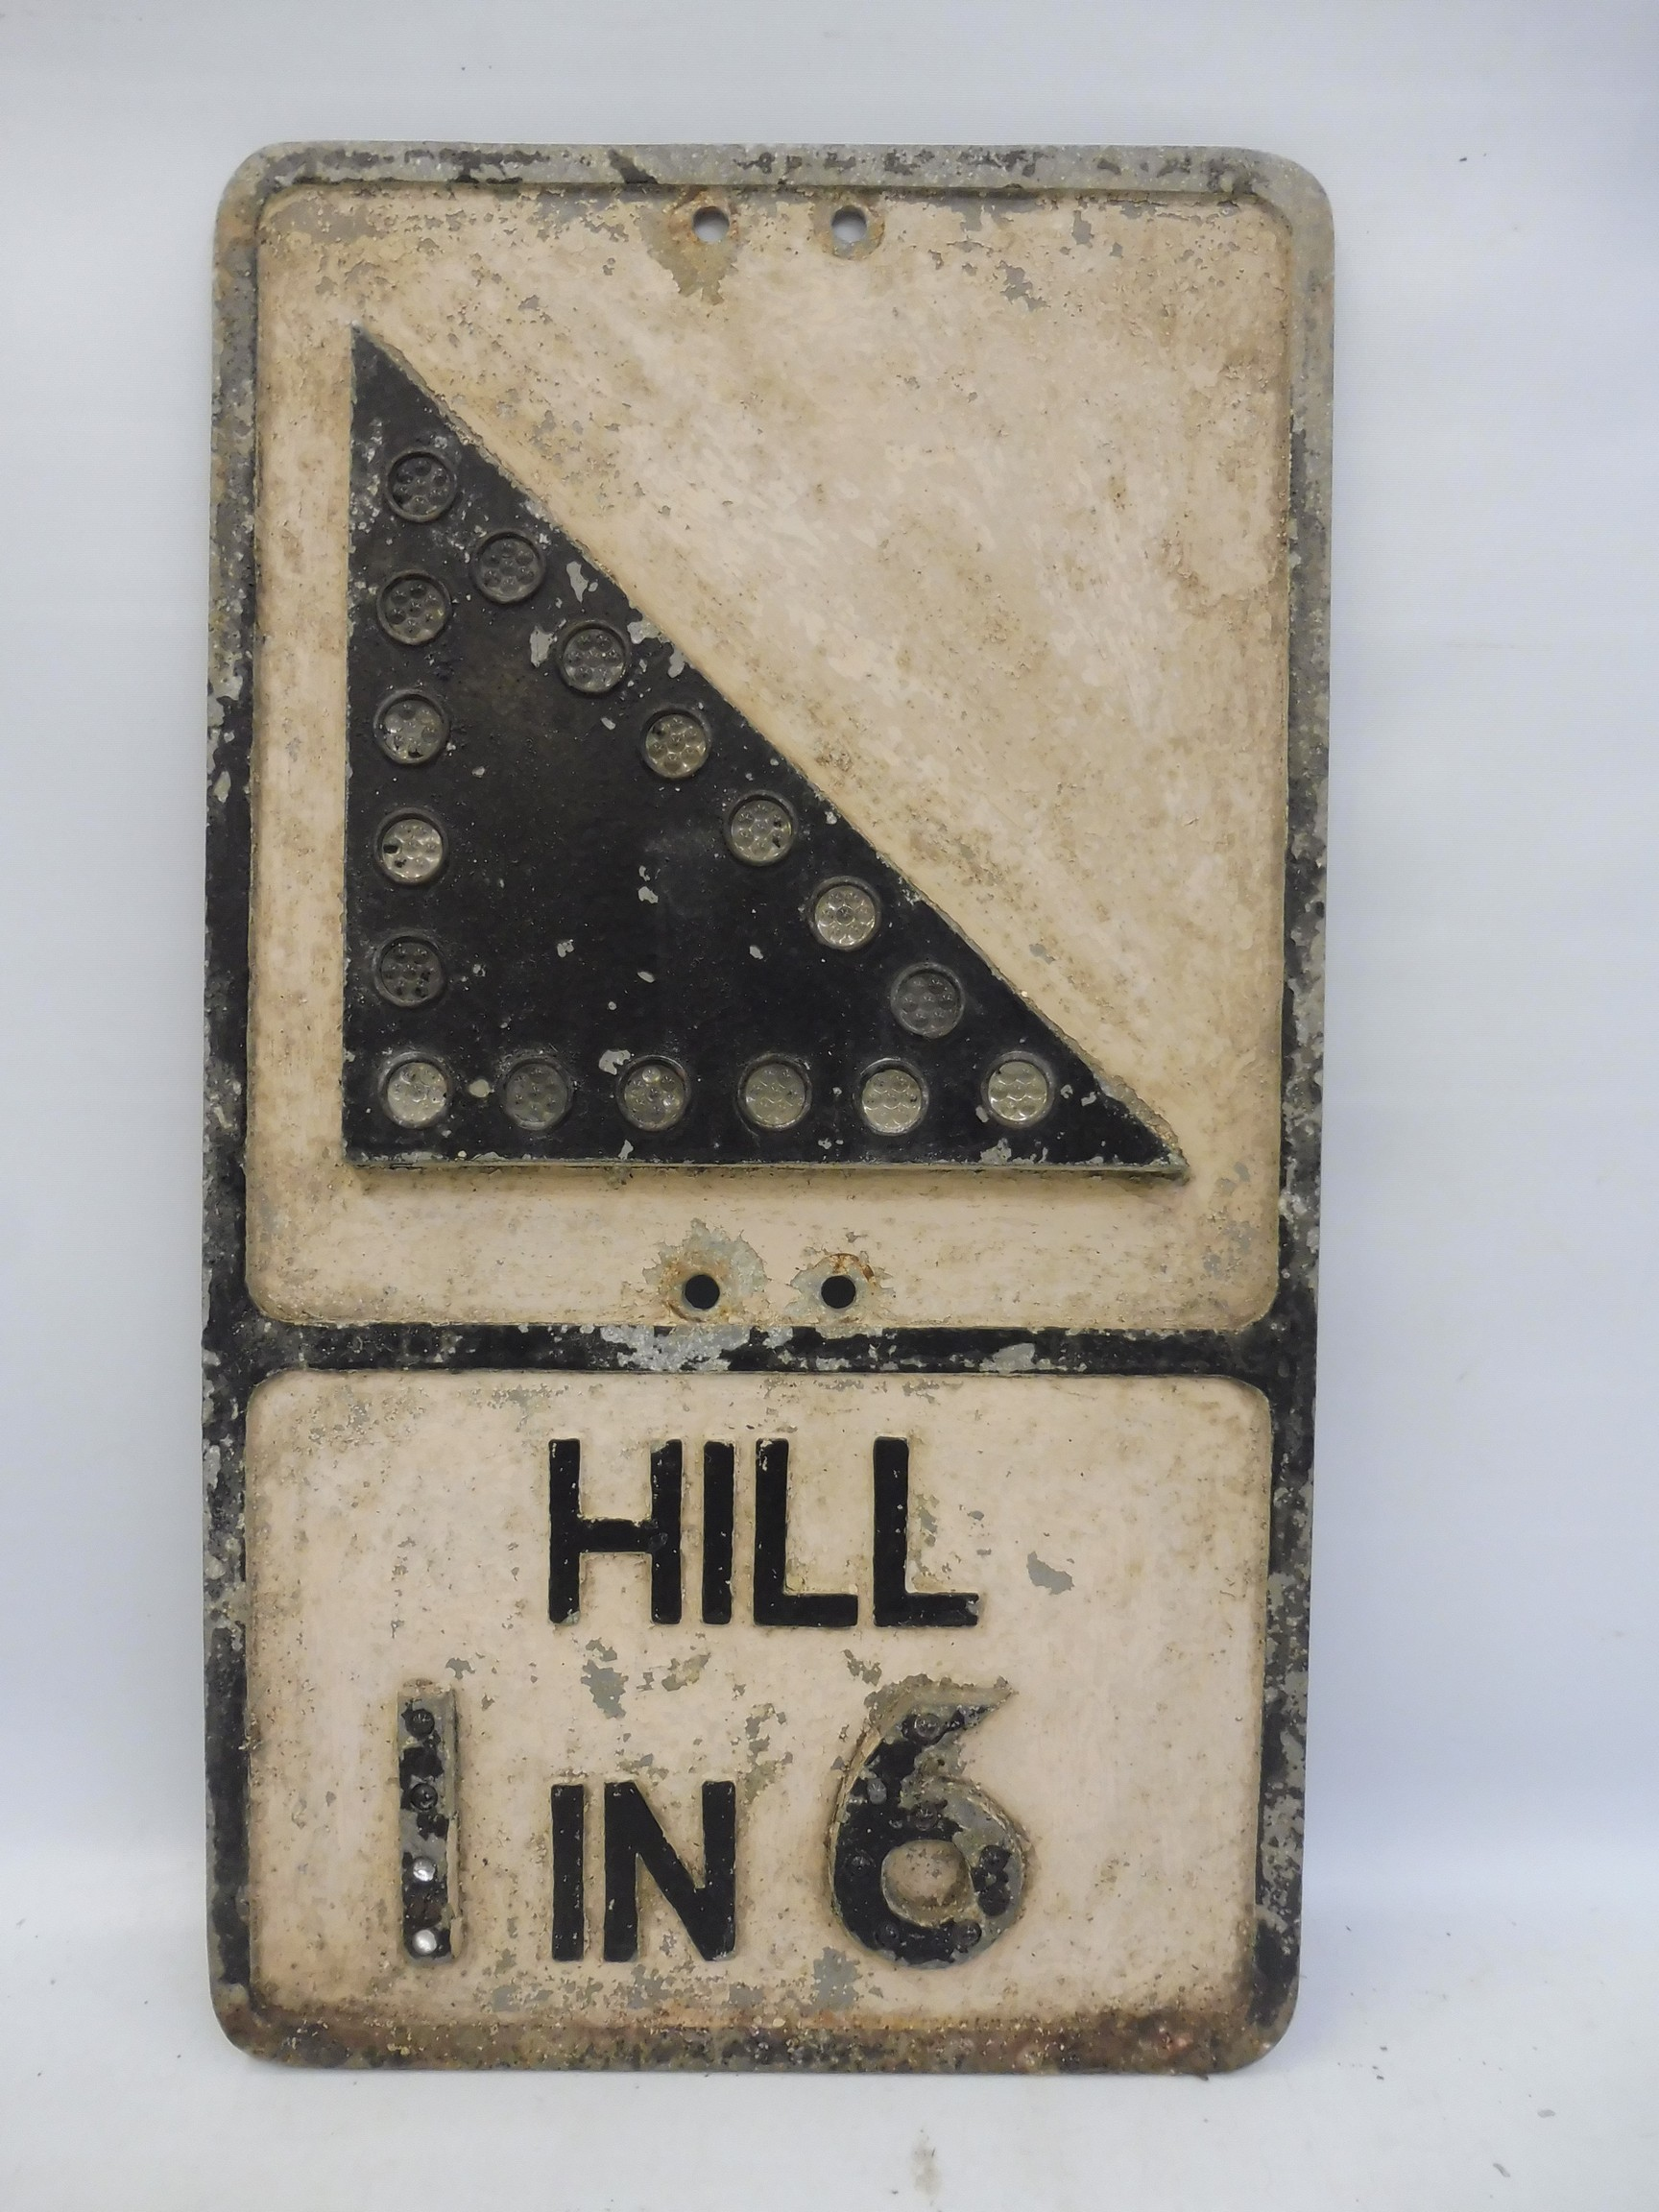 """An aluminum road sign - Hill 1 In 6, with glass reflective discs, 12 x 21""""."""